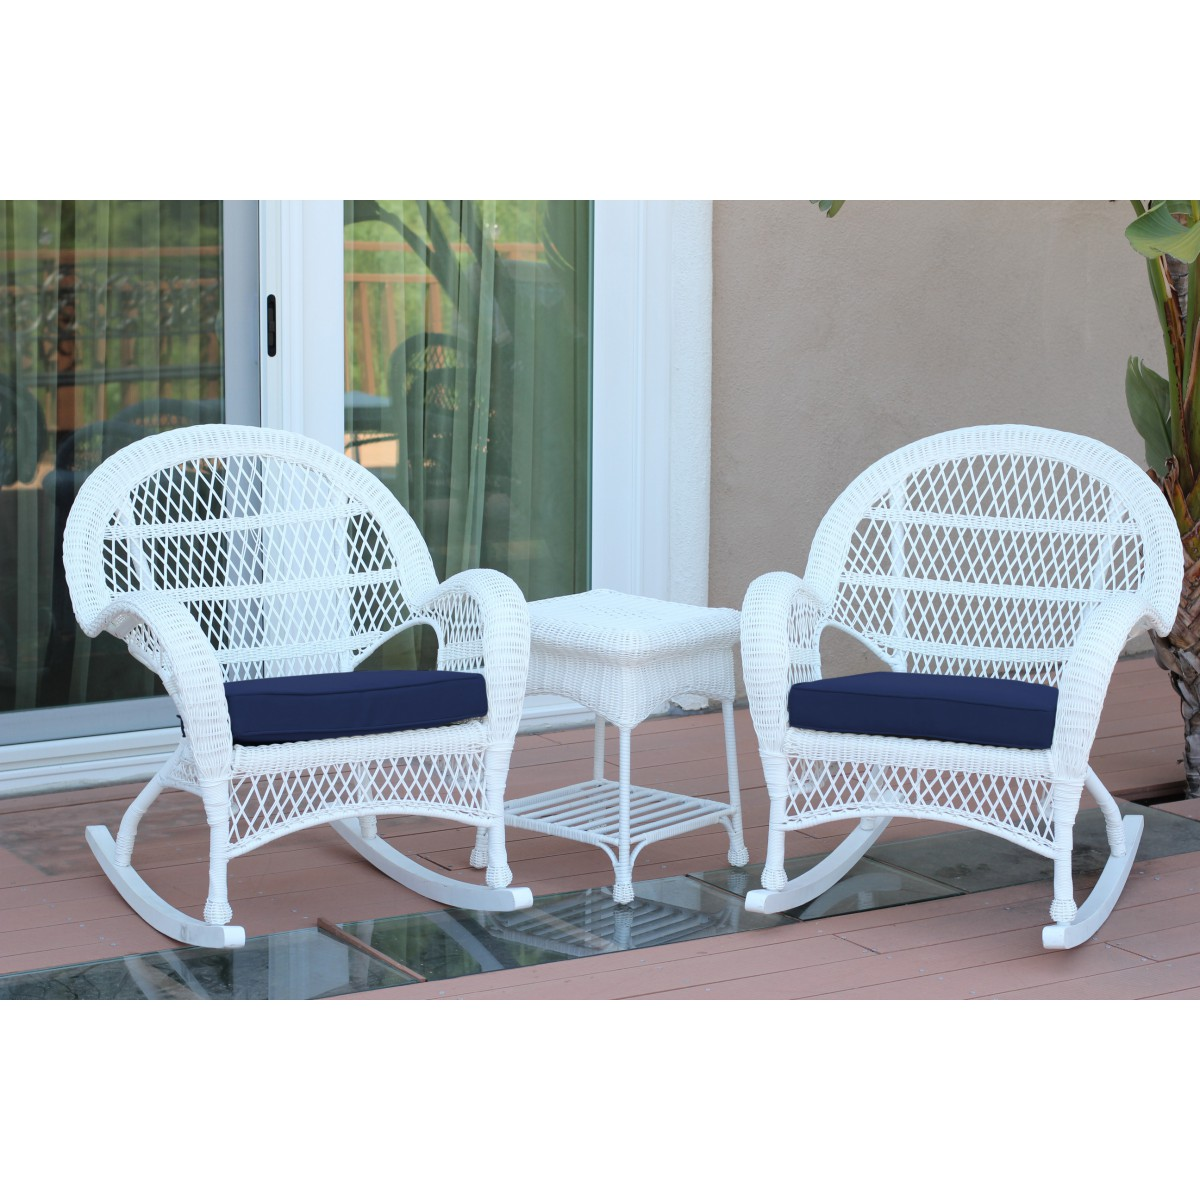 3pc Santa Maria White Rocker Wicker Chair Set Midnight Blue Cushions